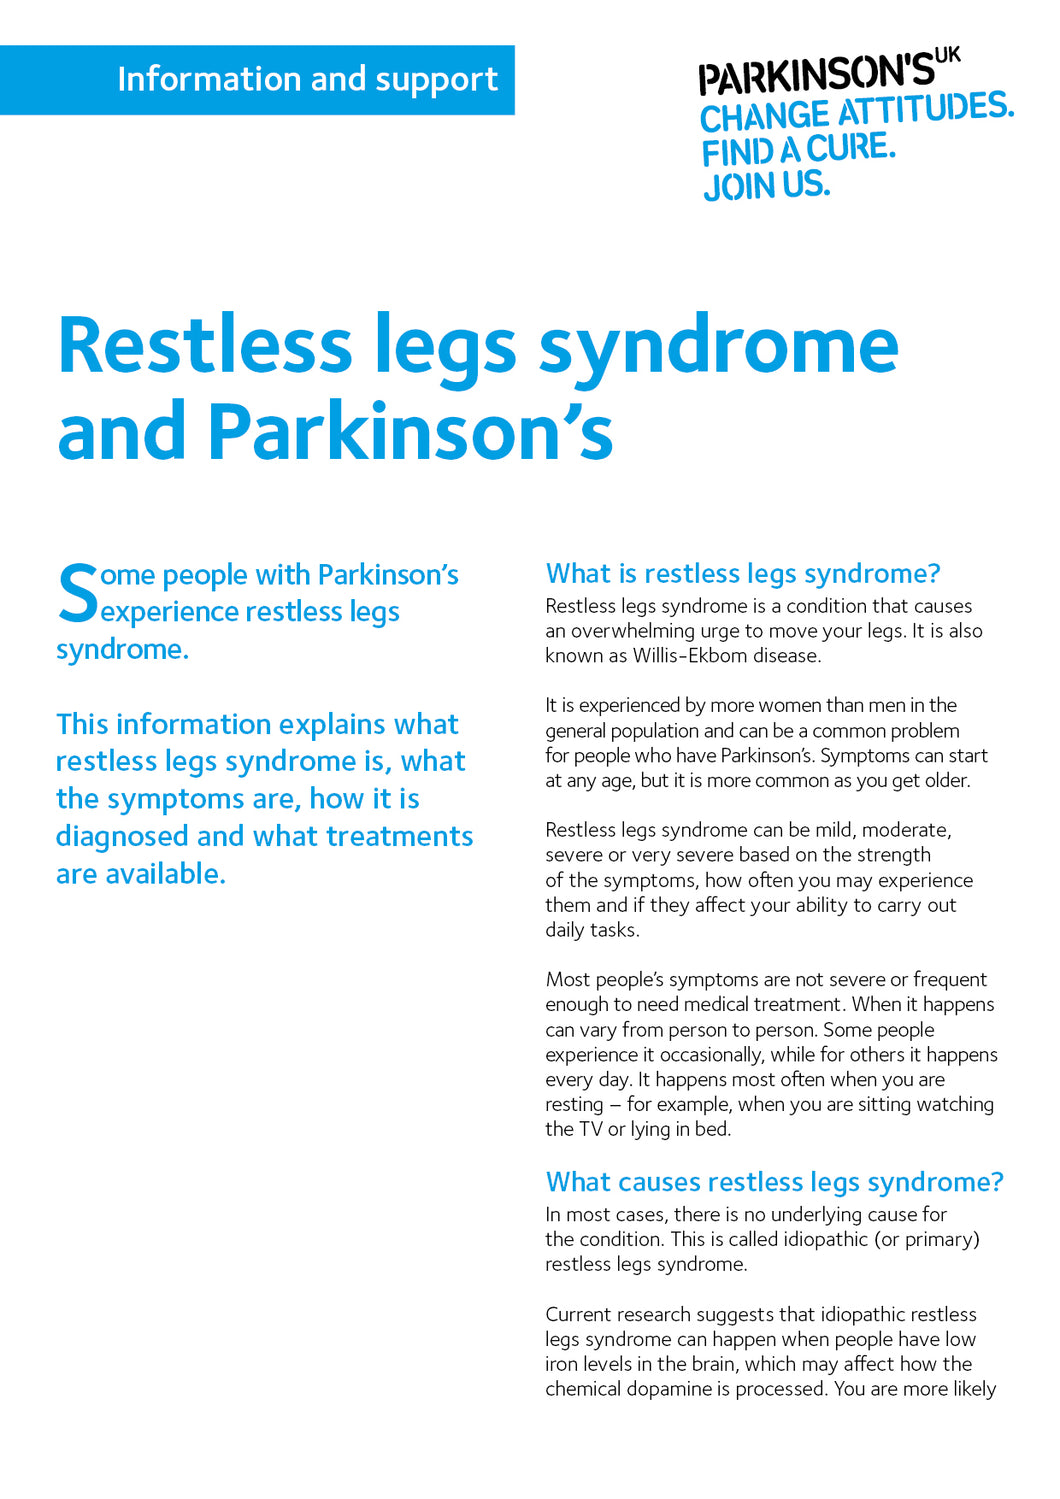 Restless legs syndrome and Parkinson's - Parkinson's shop